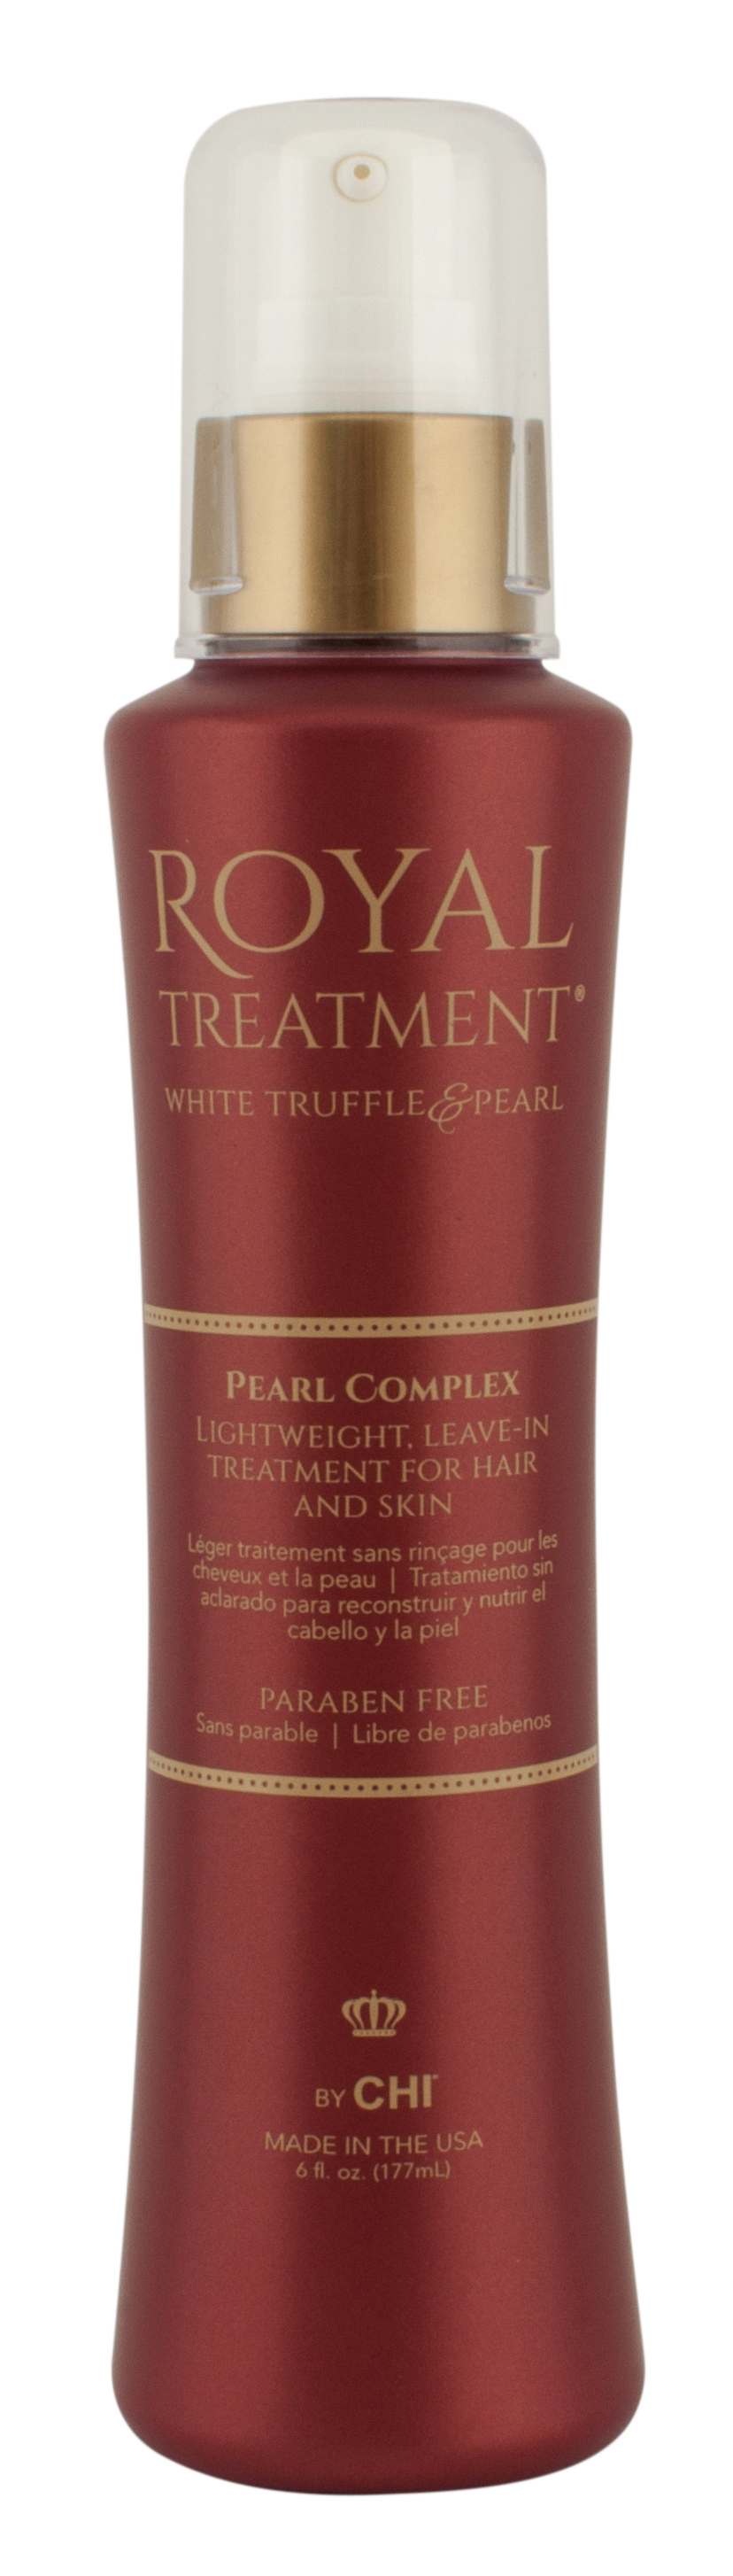 9. Farouk Royal Treatment Pearl  Complex Lightweight Leave-In Treatment for Hair and Skin by CHI $44.00 from www.chi.com